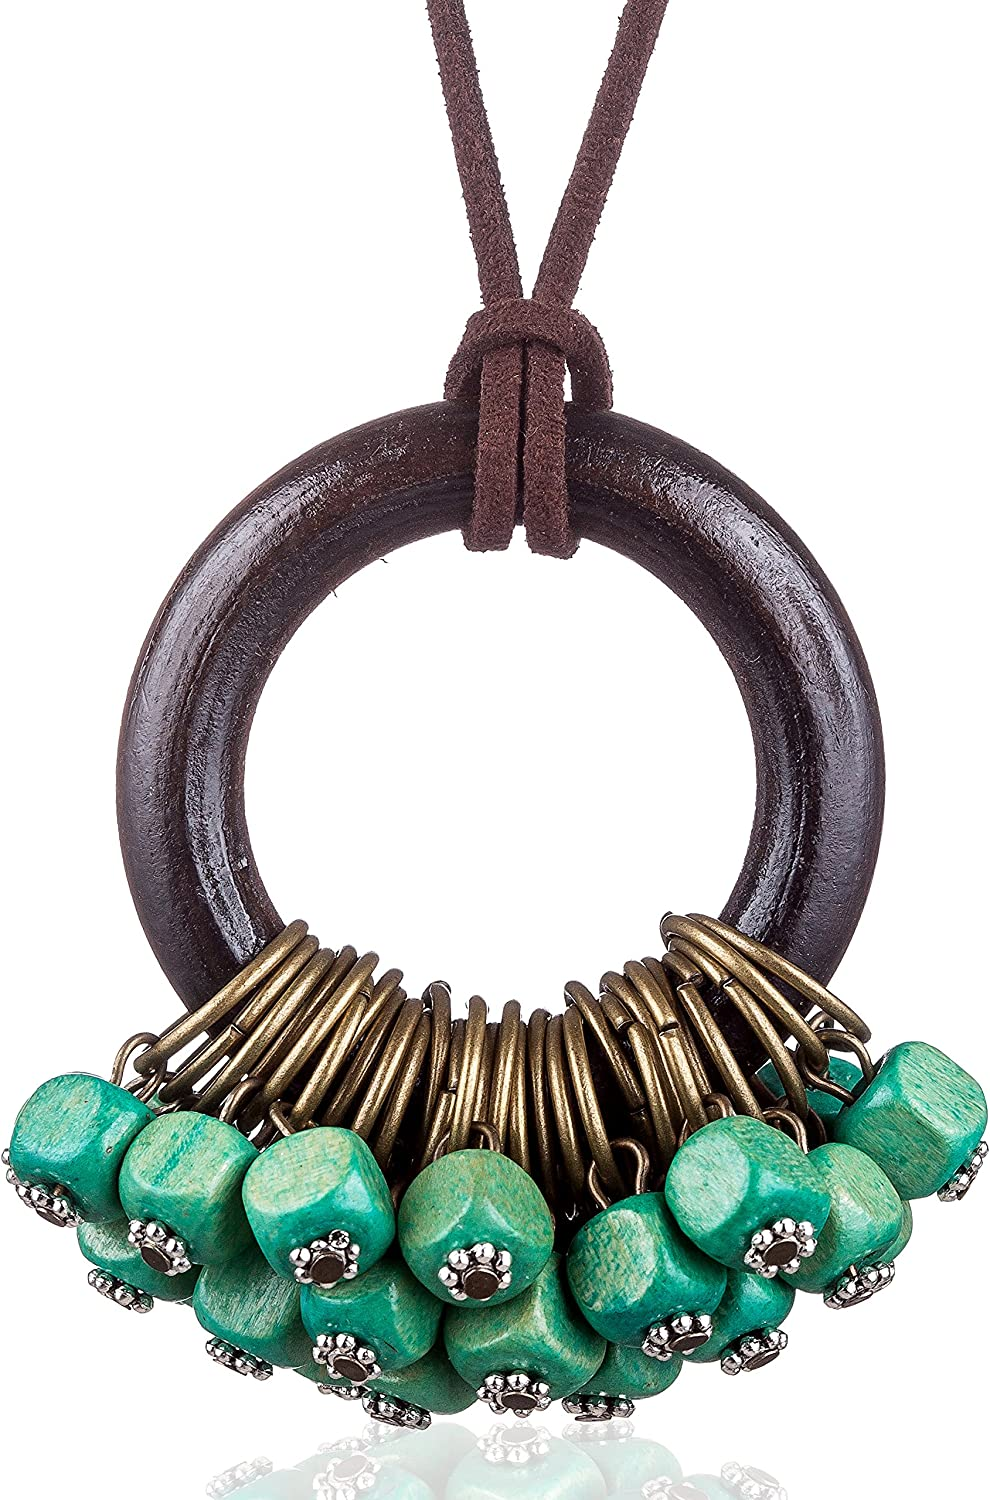 COOSTUFF ANNA Handmade Color Wood Beads Pendant Vintage Necklaces for Women Handmade Women Jewelry (Blue)